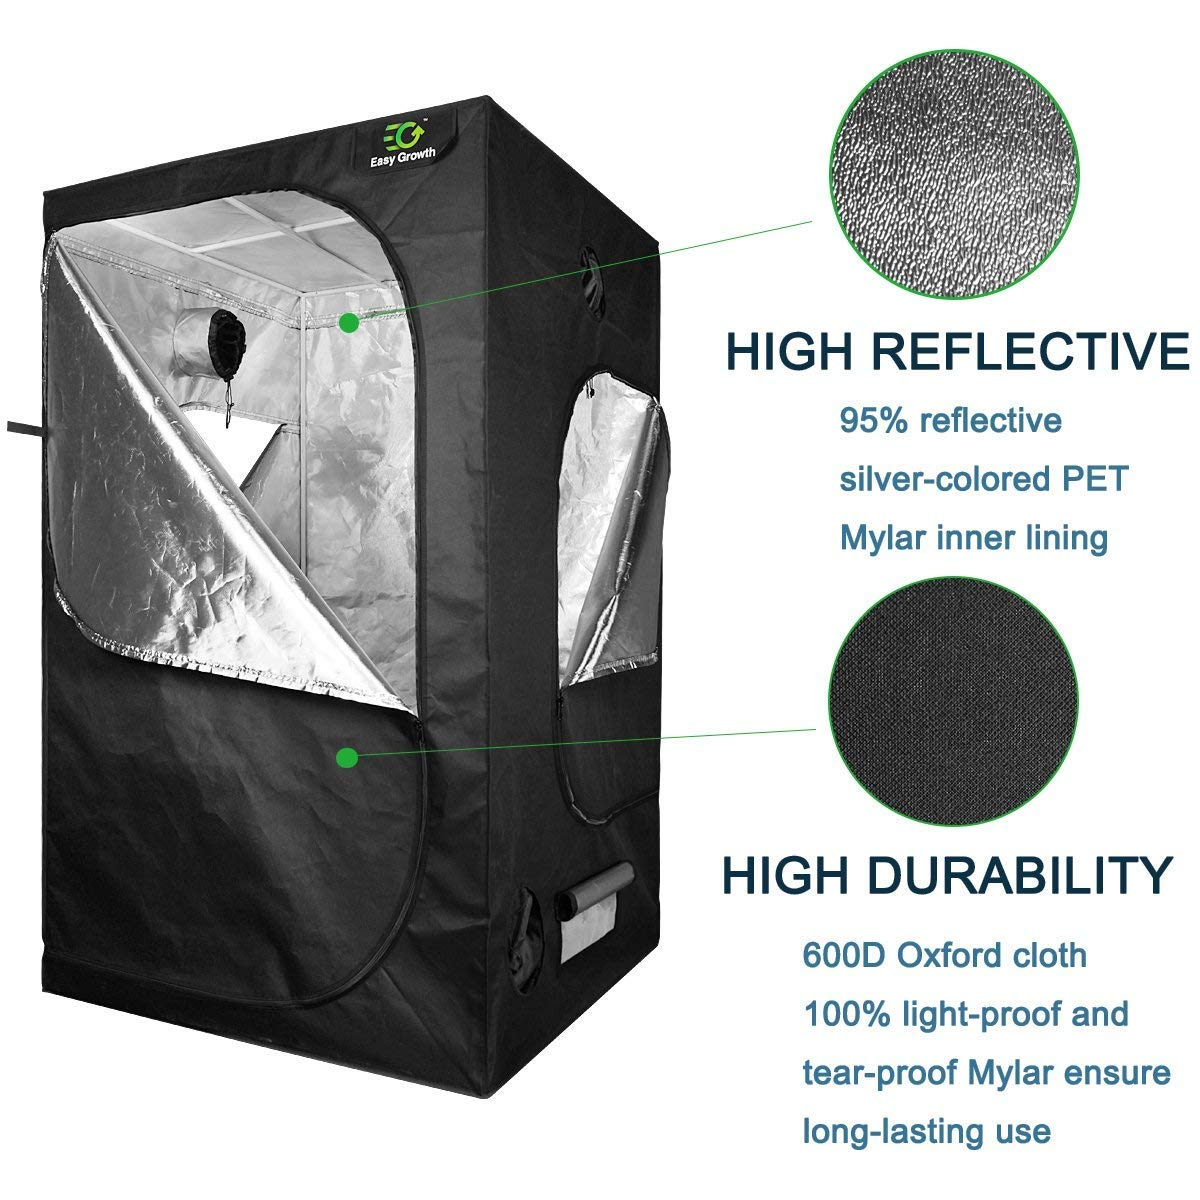 EasyGrowth 40''x40''x80'' Reflective Mylar Hydroponic Grow Tent with Observation Window and Waterproof Floor Tray for Indoor Plant Growing by EasyGrowth (Image #6)